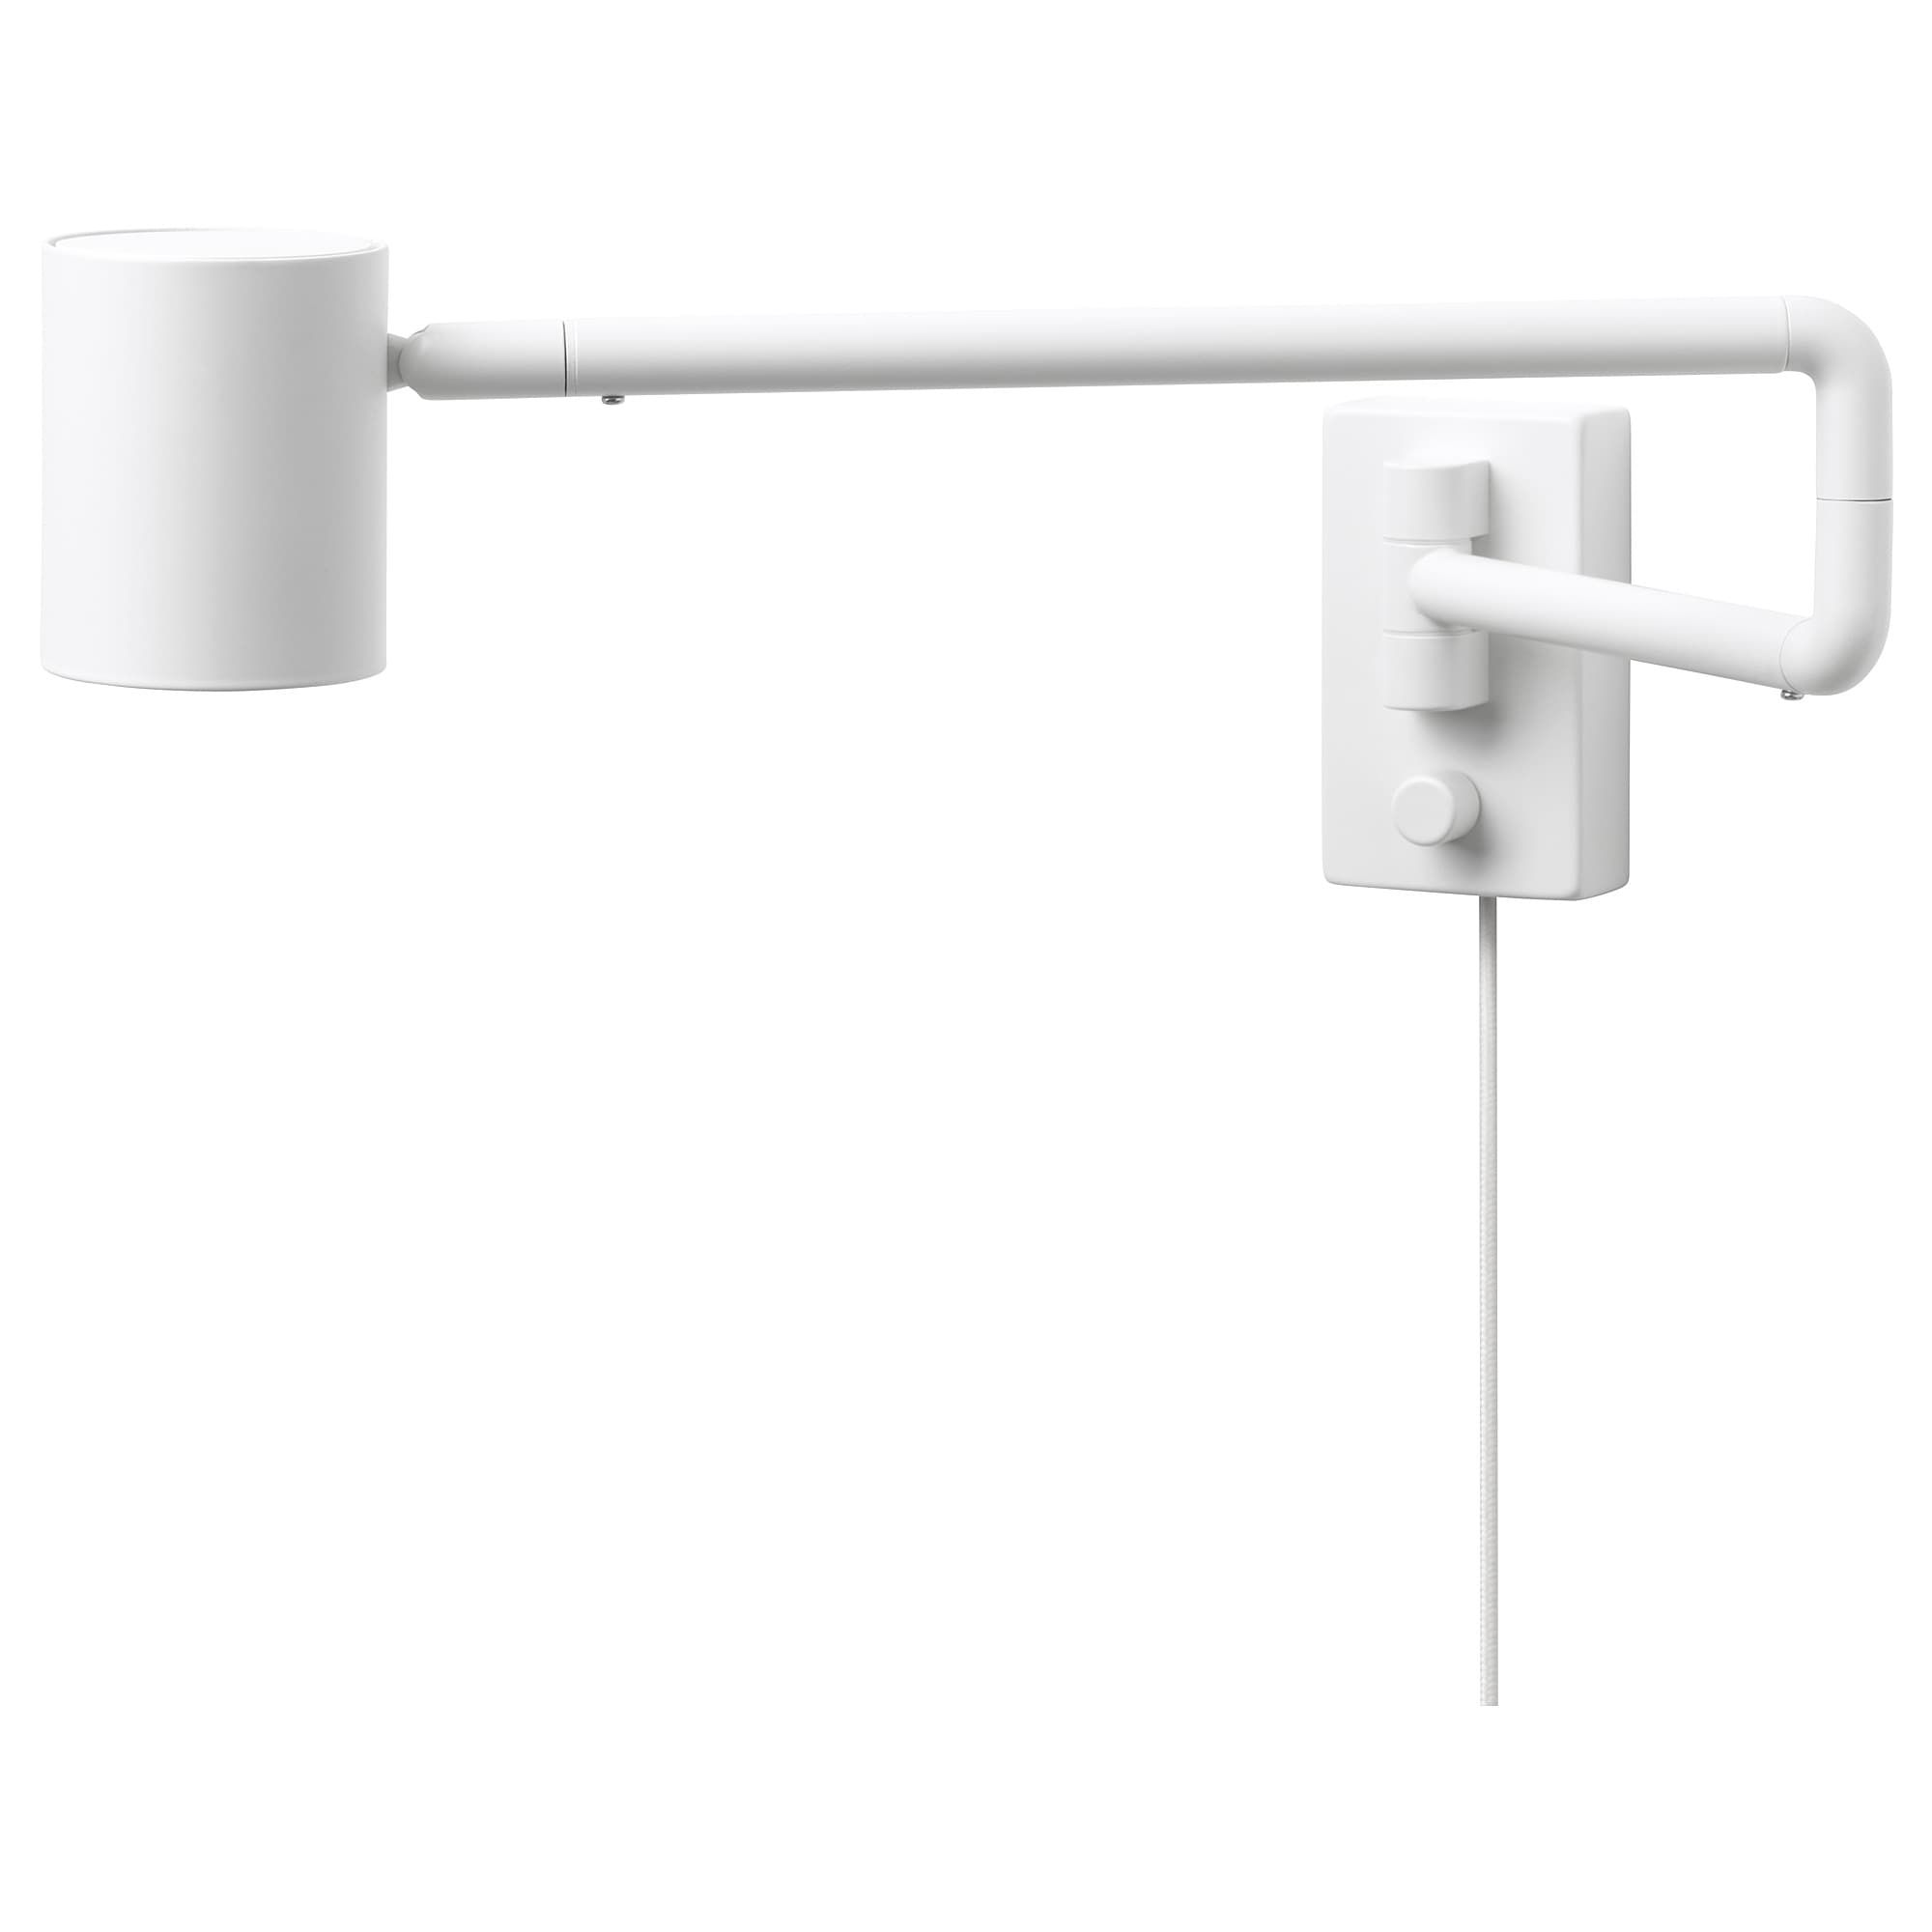 Ikea Nymane White Wall Lamp With Swing Arm Led Bulb Ikea New Ikea Attic Design